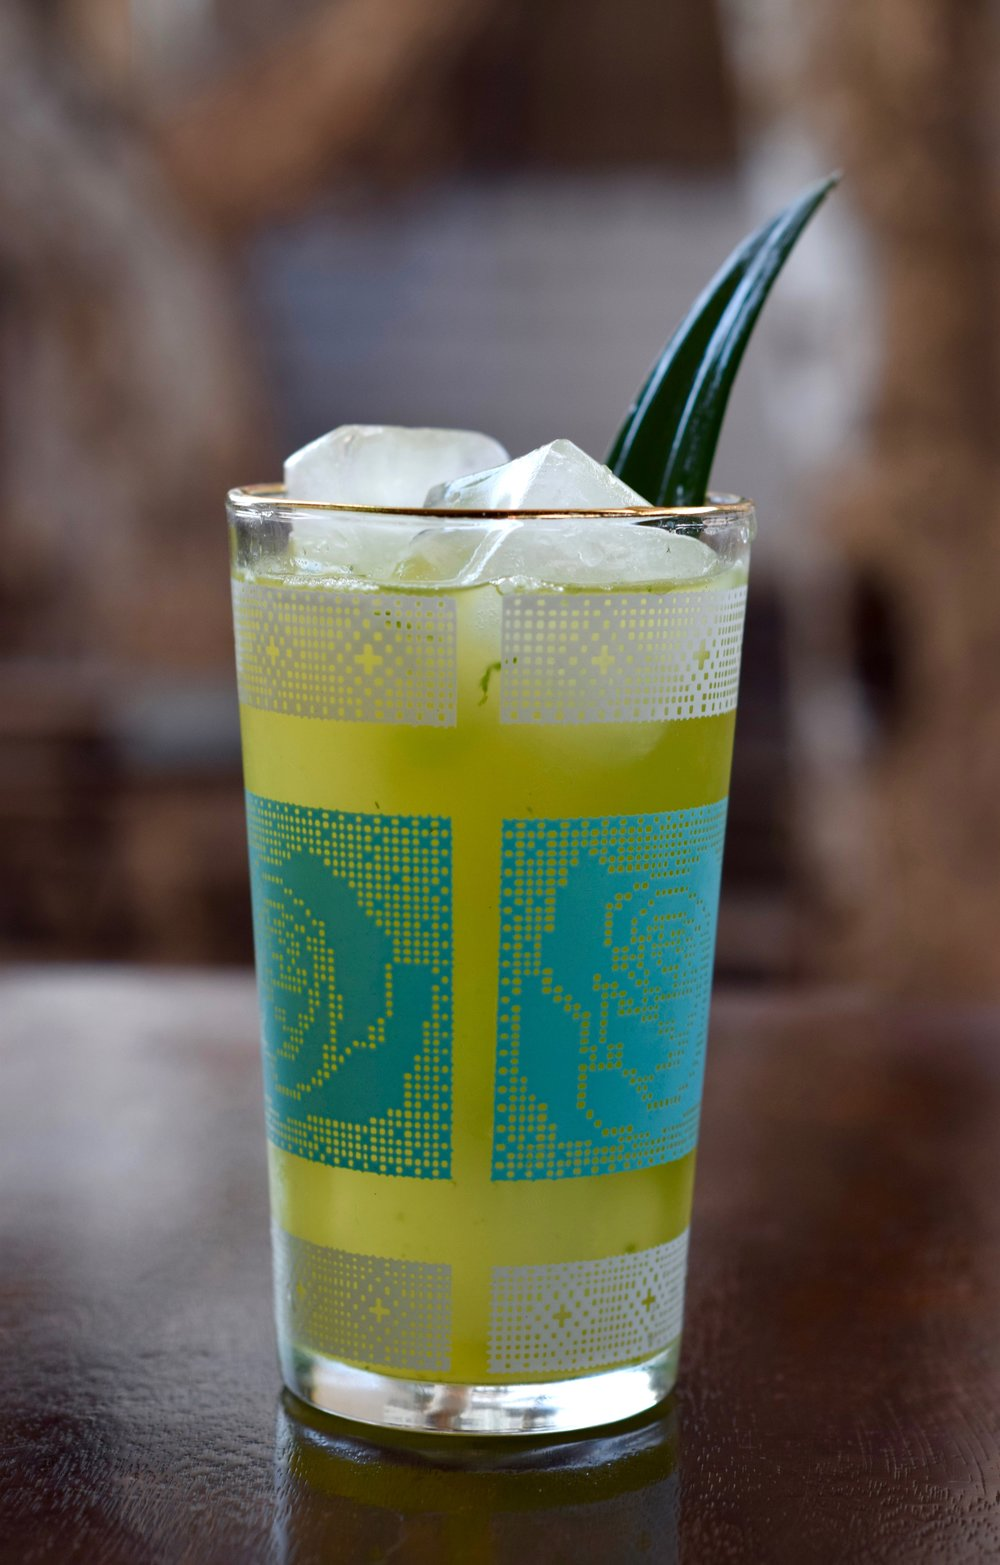 AZTEC GARDEN - 1 oz nostrum pineapple turmeric ginger shrub3/4 oz fresh lime juice5-6 leaves fresh epazote (or mint)soda waterdirections: shake first three ingredients with ice.top with soda and strain over fresh ice.